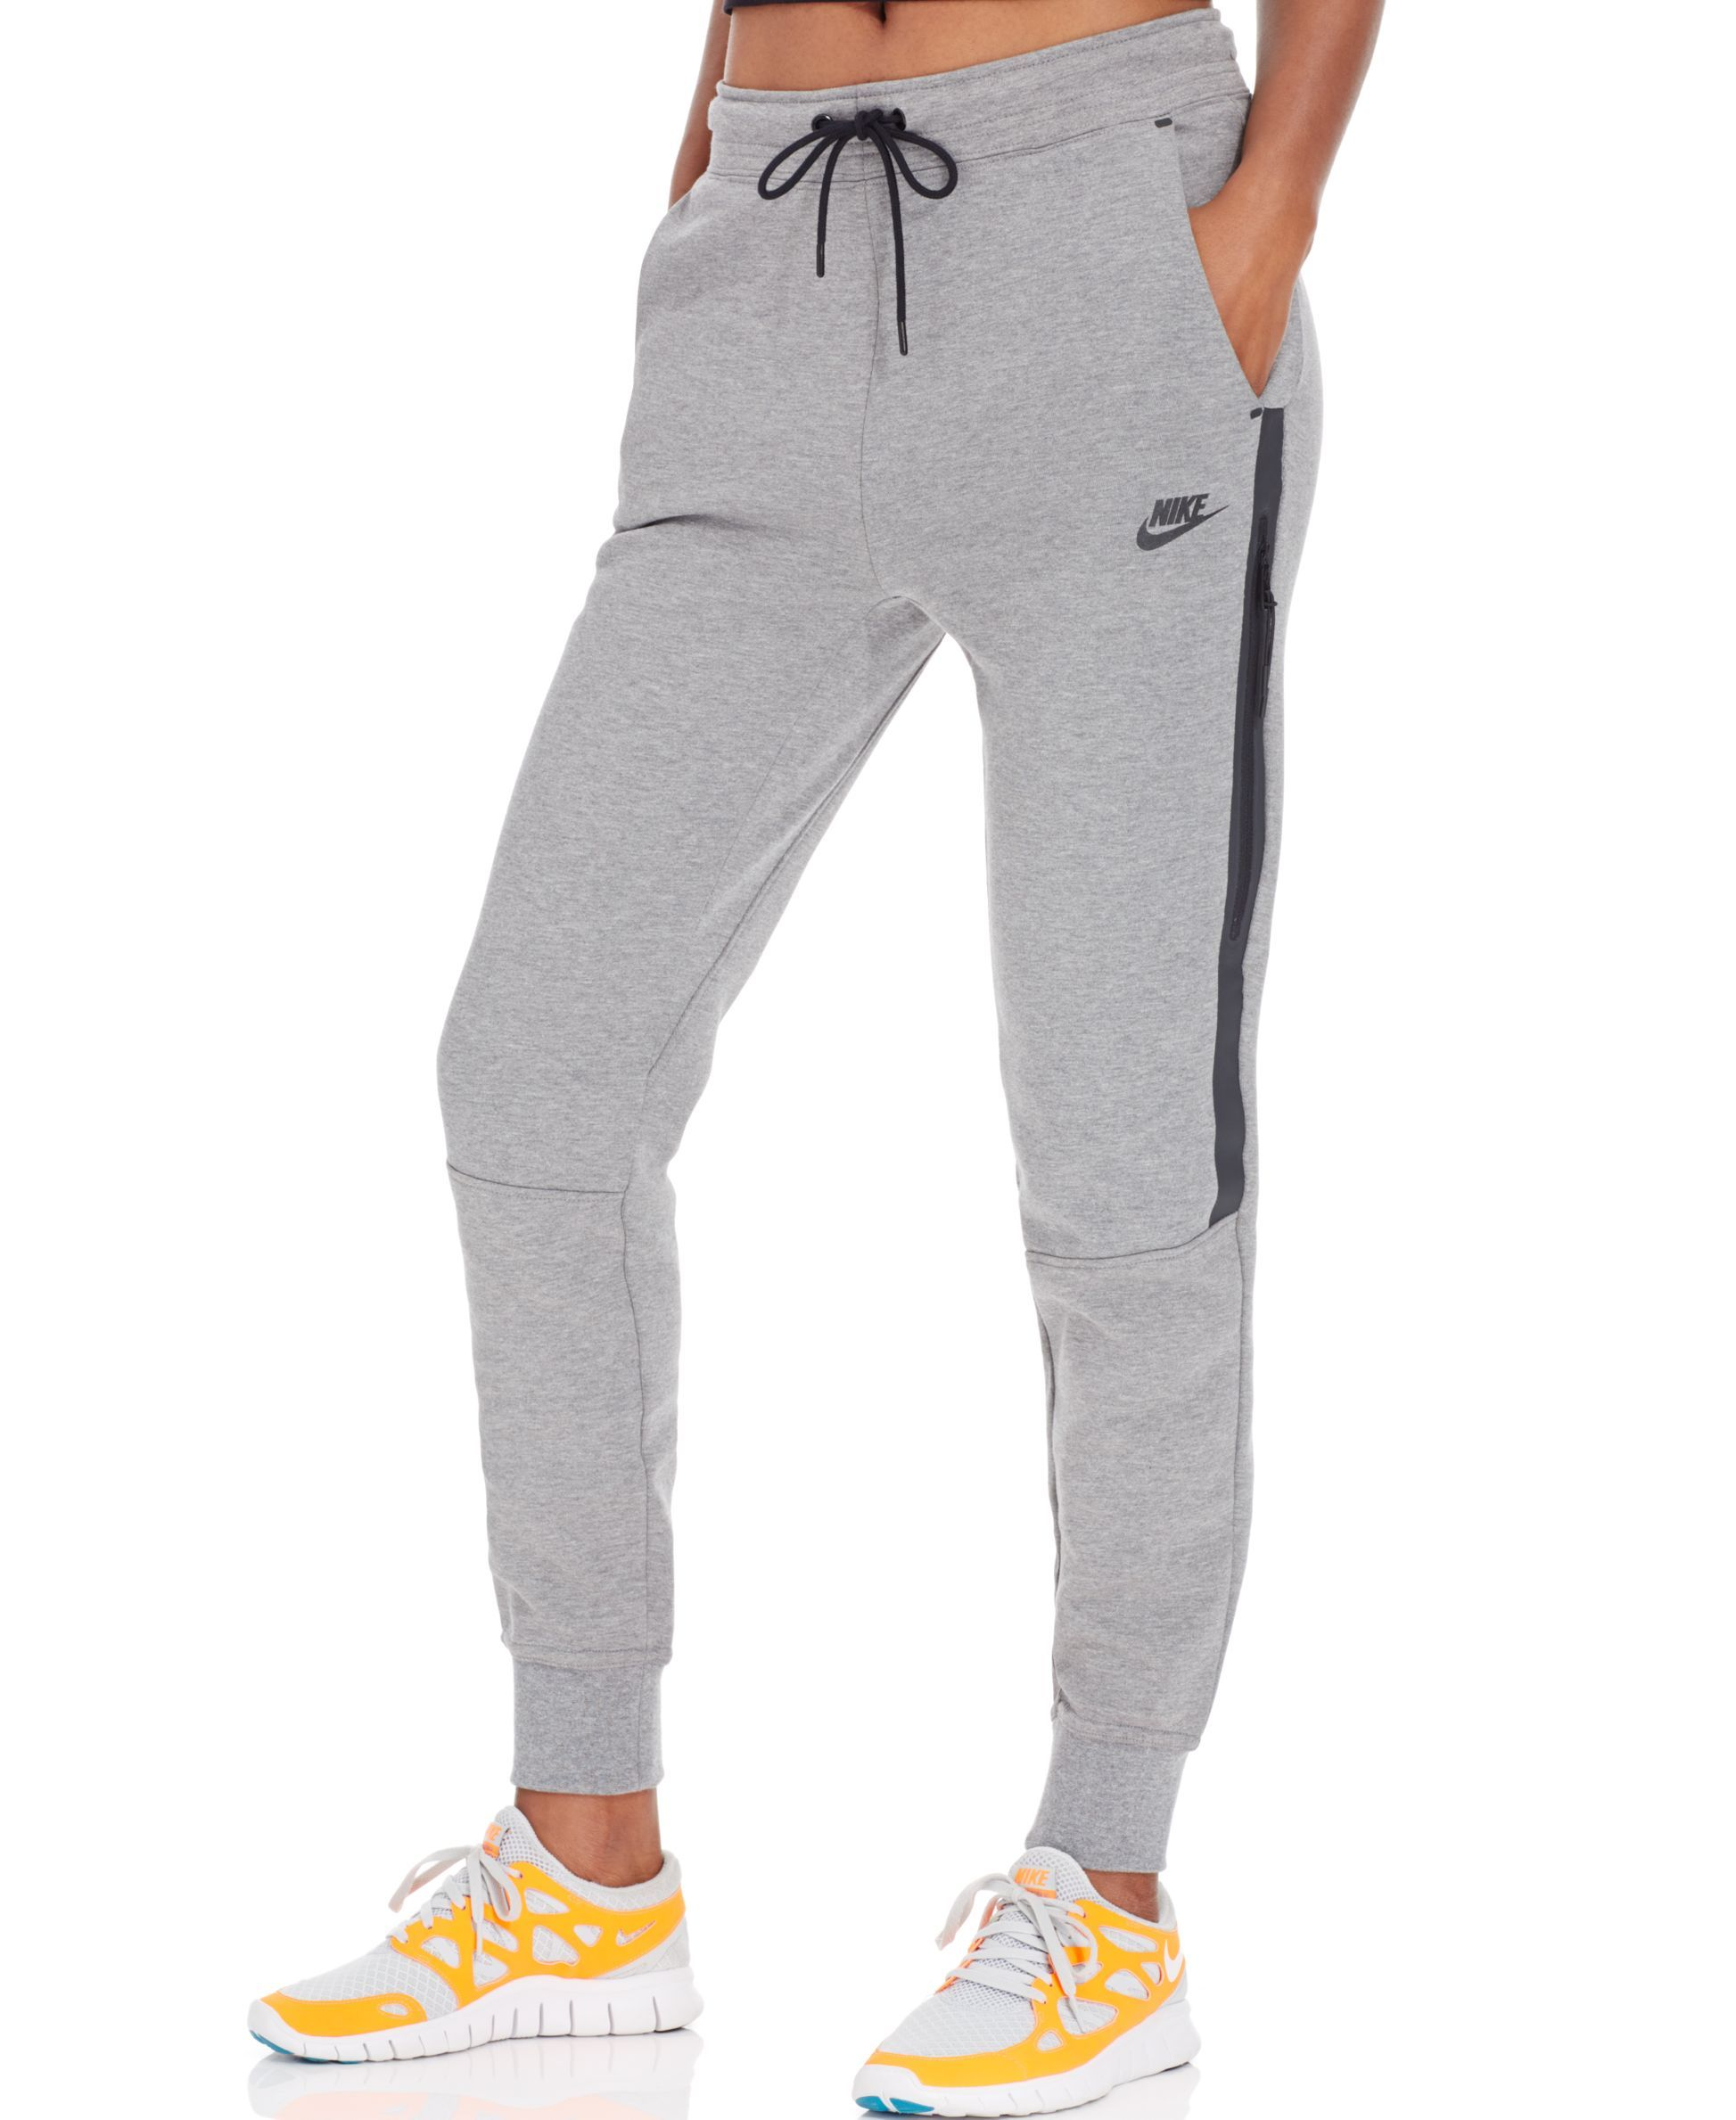 New We All Love Sweat Pants And The Comfort They Give Us, But Nike Has Taken It To Another Level The Nike Strike GPX Pant With Pockets Combine Style And Comfort Like Nothing You Have Ever Seen All The Pros Are Wearing These Pants And For